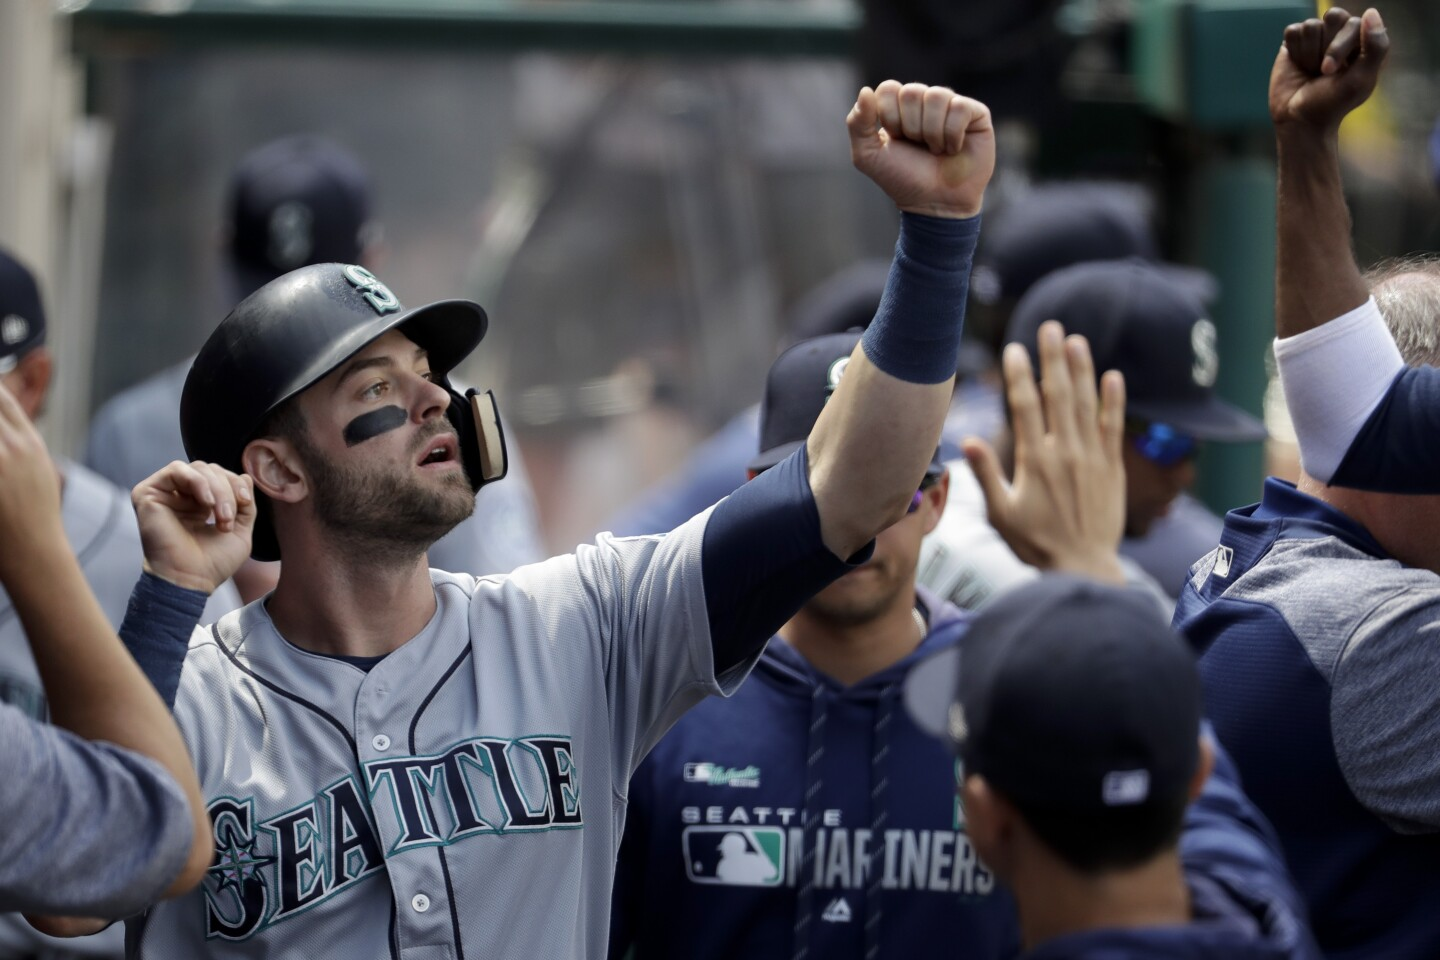 The Mariners' Mitch Haniger celebrates in the dugout after scoring on single during the third inning of a baseball game against the Los Angeles Angels in Anaheim, Calif., Sunday, April 21, 2019. (AP Photo/Chris Carlson)